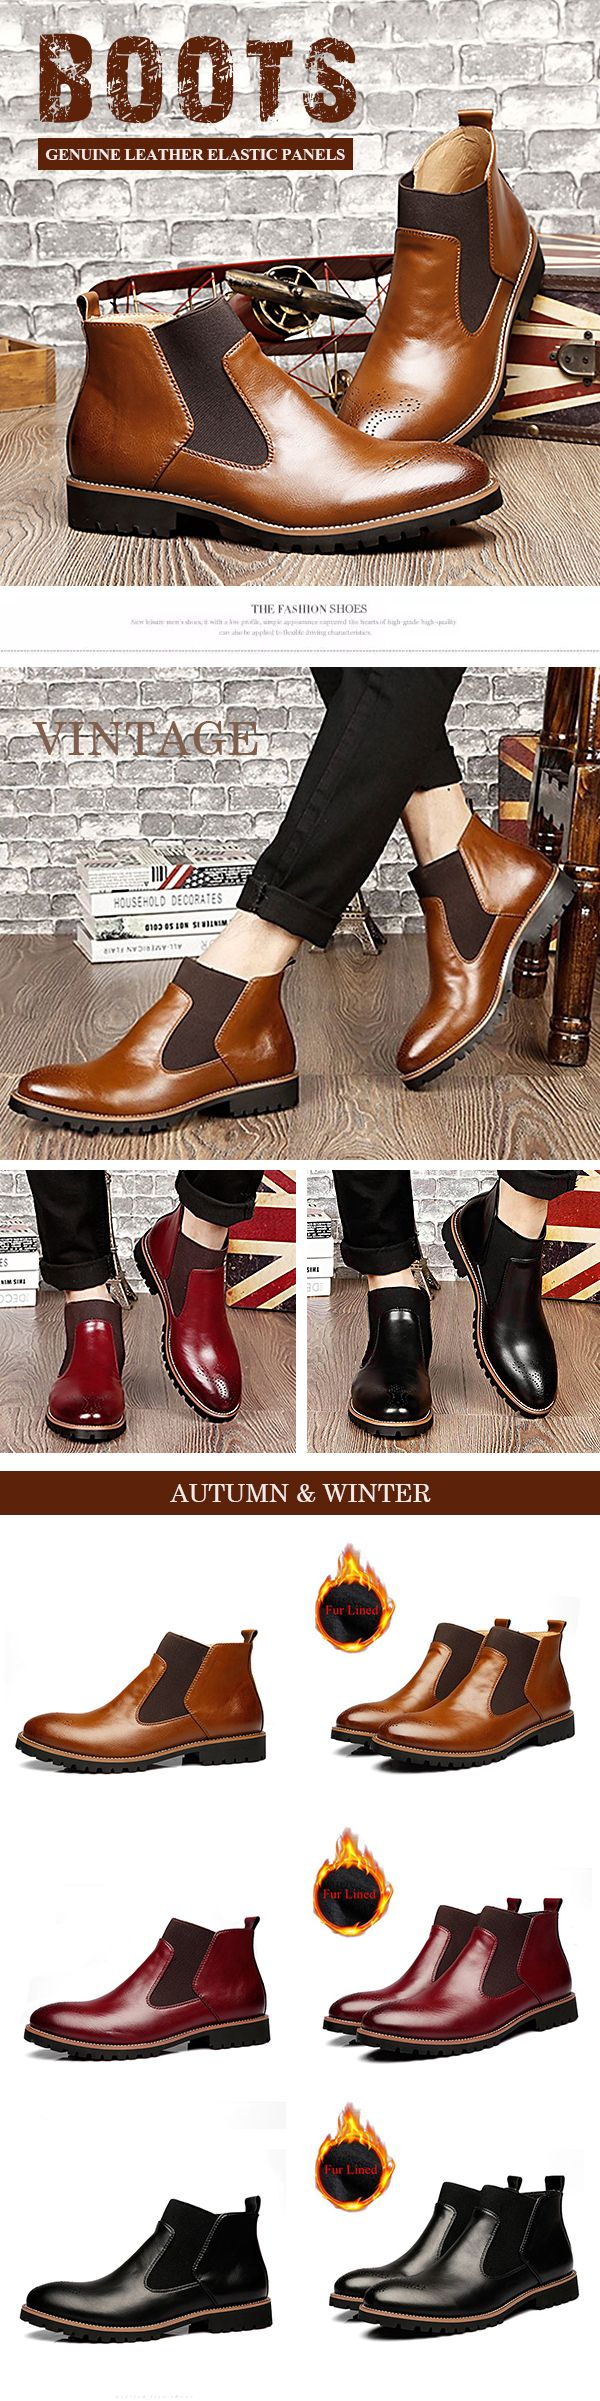 US$45.99 Men Vintage Pointed Toe Hollow Out Genuine Leather Elastic Panels Boots